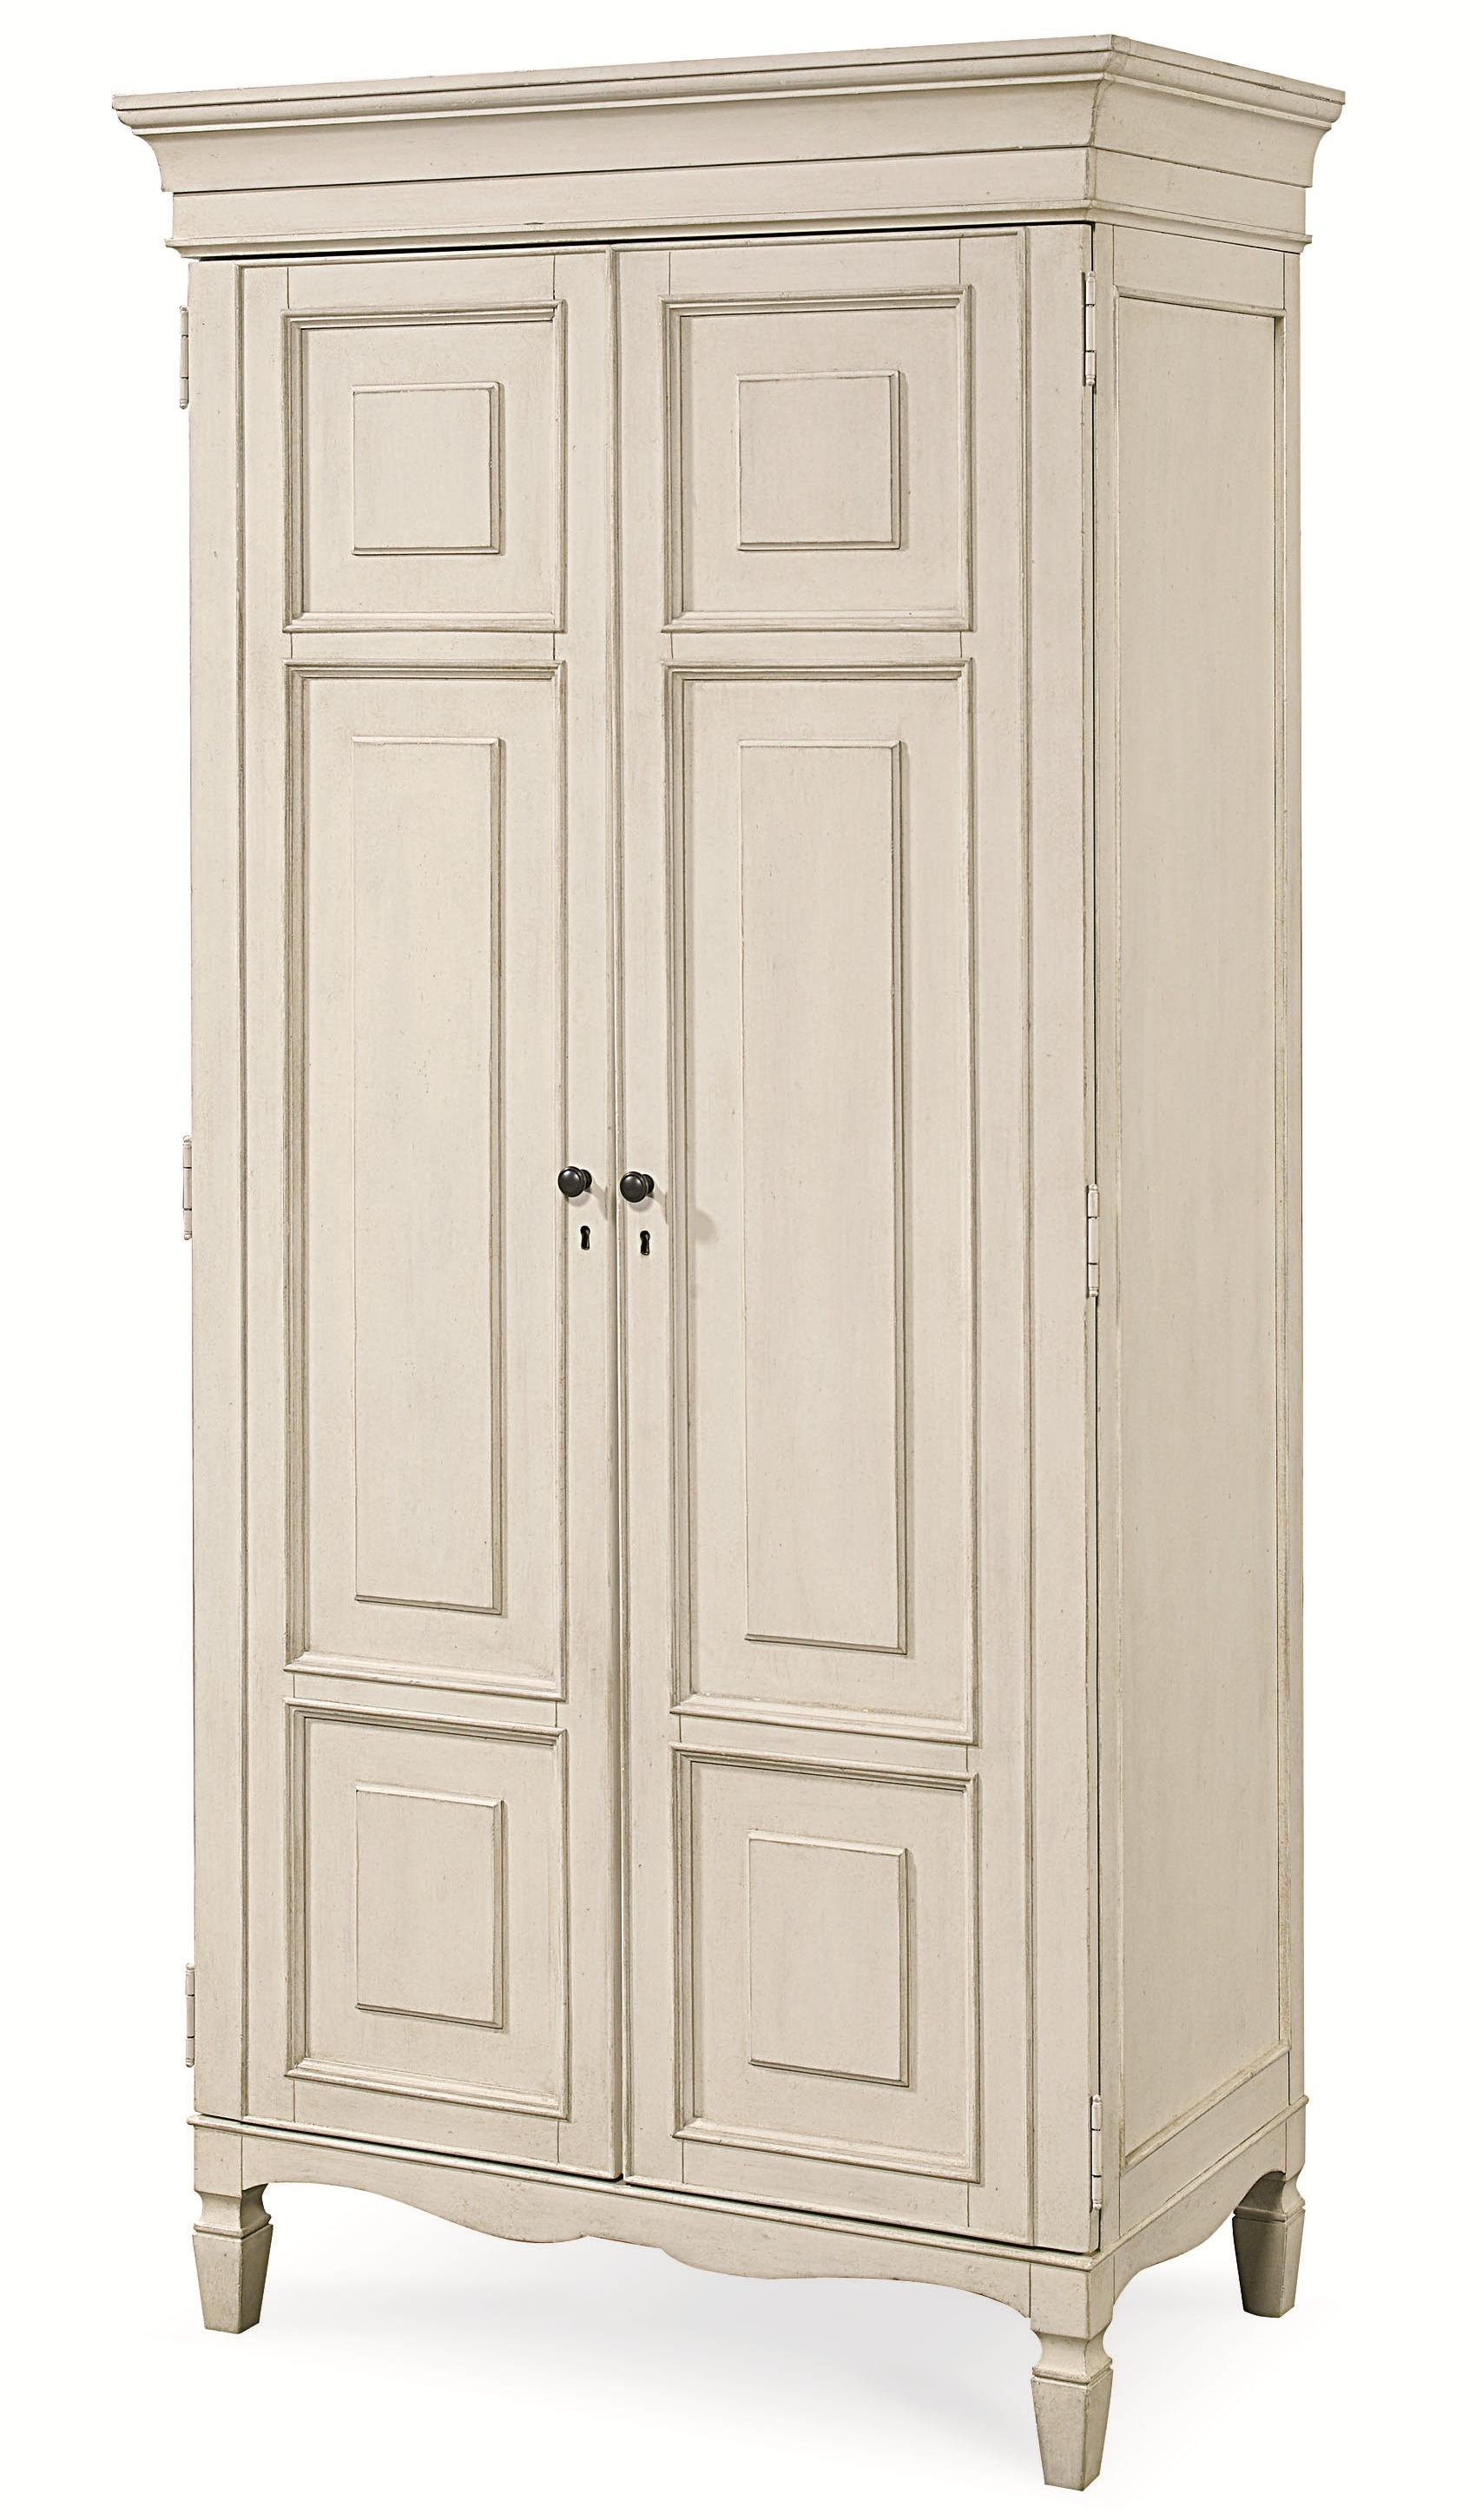 with drawers closetmaid cabinets raised standing white panel doors p freestanding door and drawer free cabinet in base